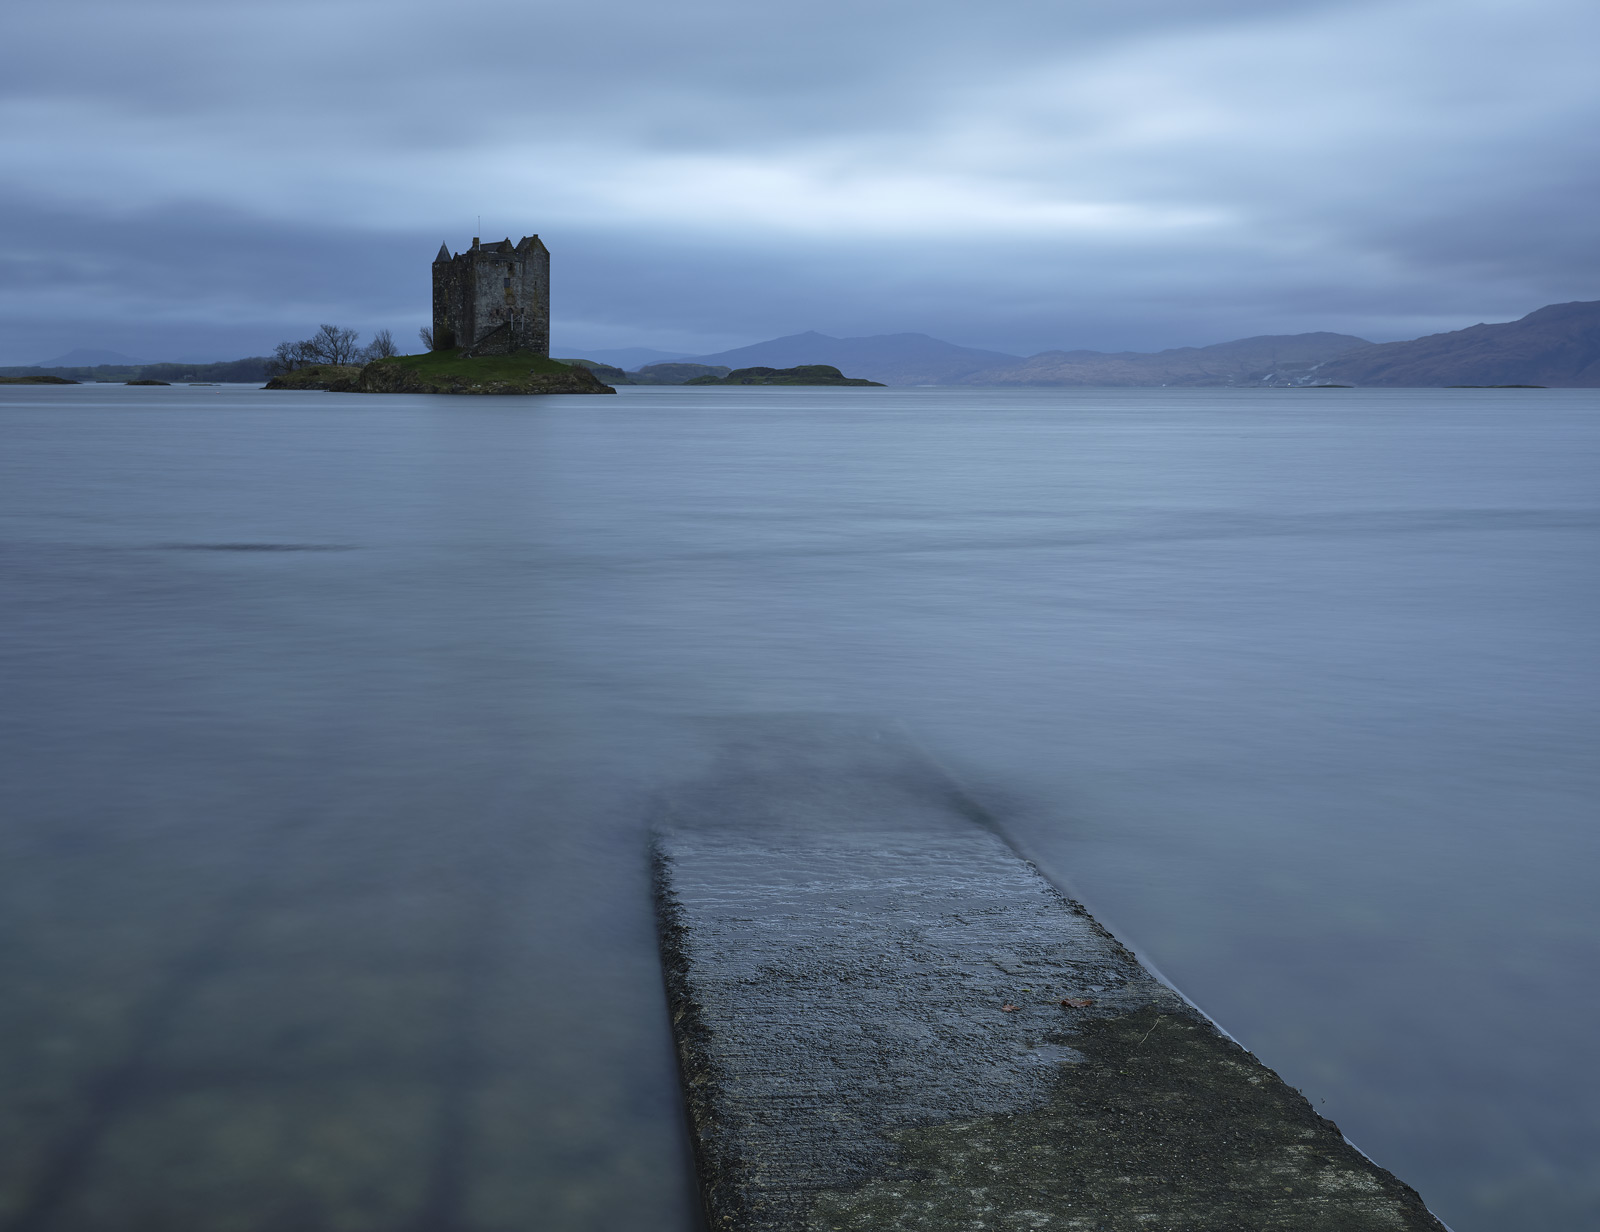 It was probably not the most inspiring evening to be out at Castle Stalker there was a wind ruffling the surface of the water...